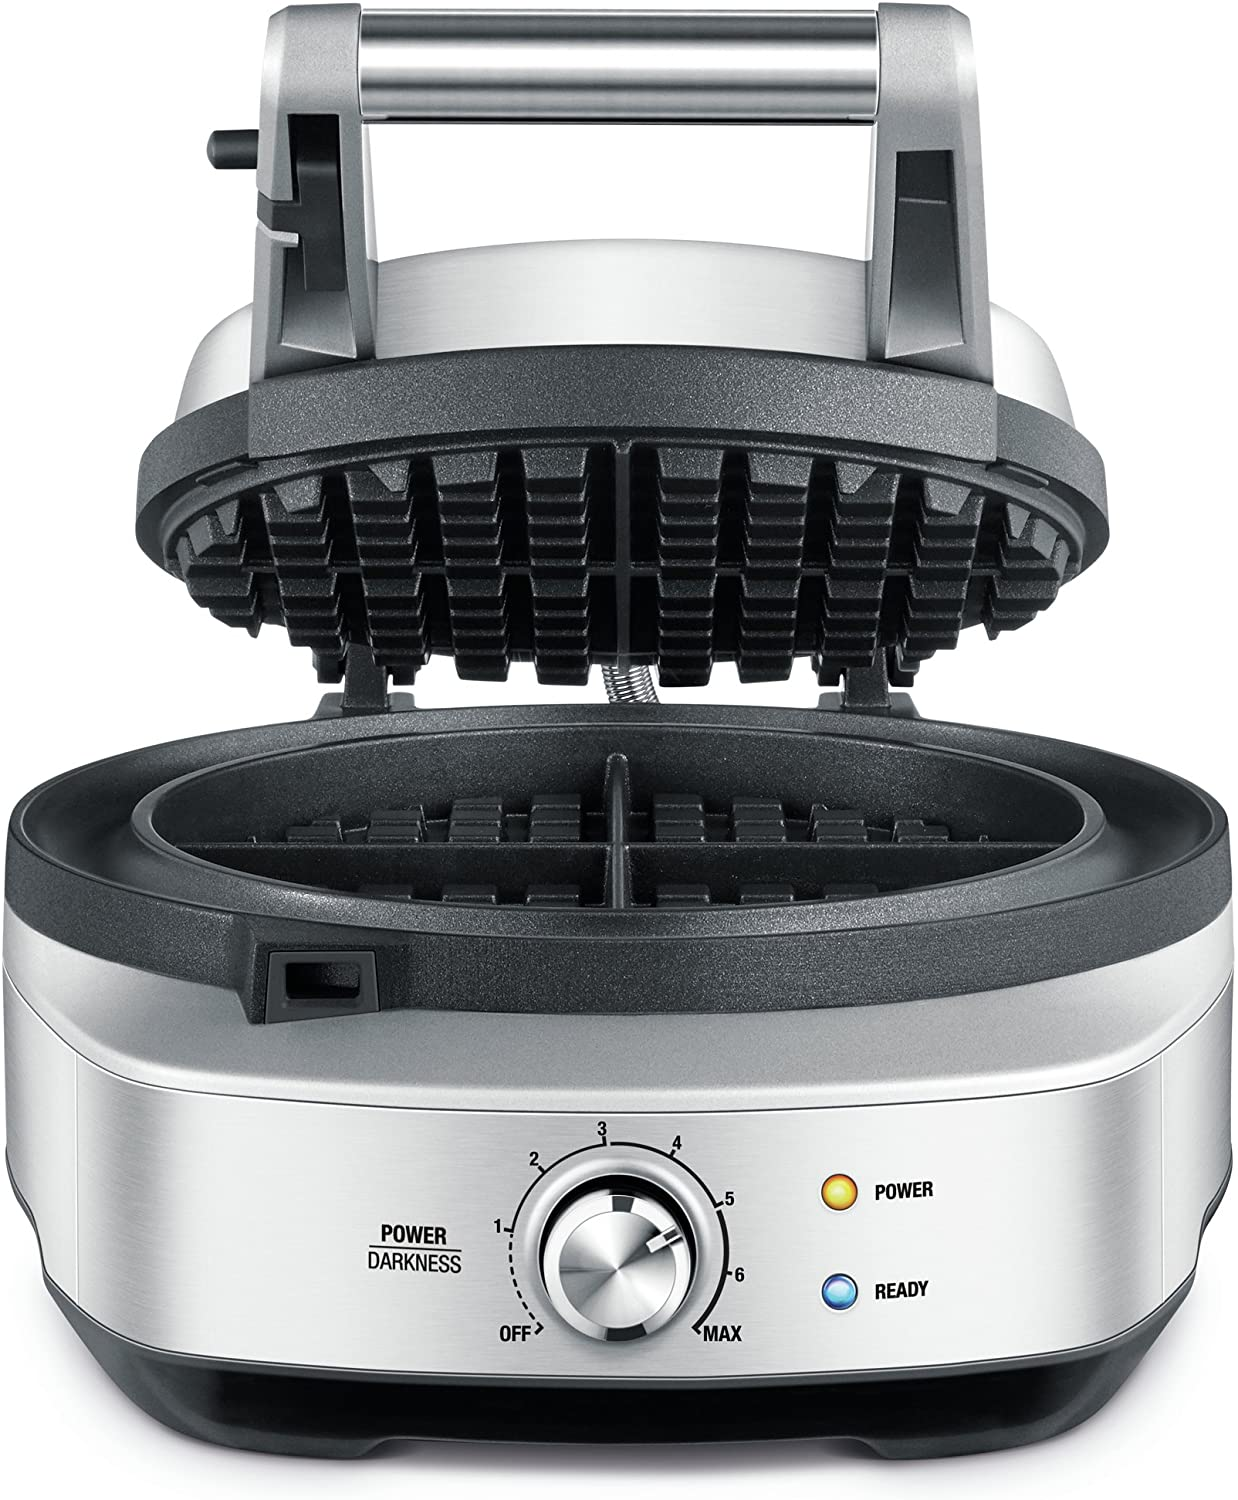 Breville BWM520BSS The No Mess Waffle Maker Review